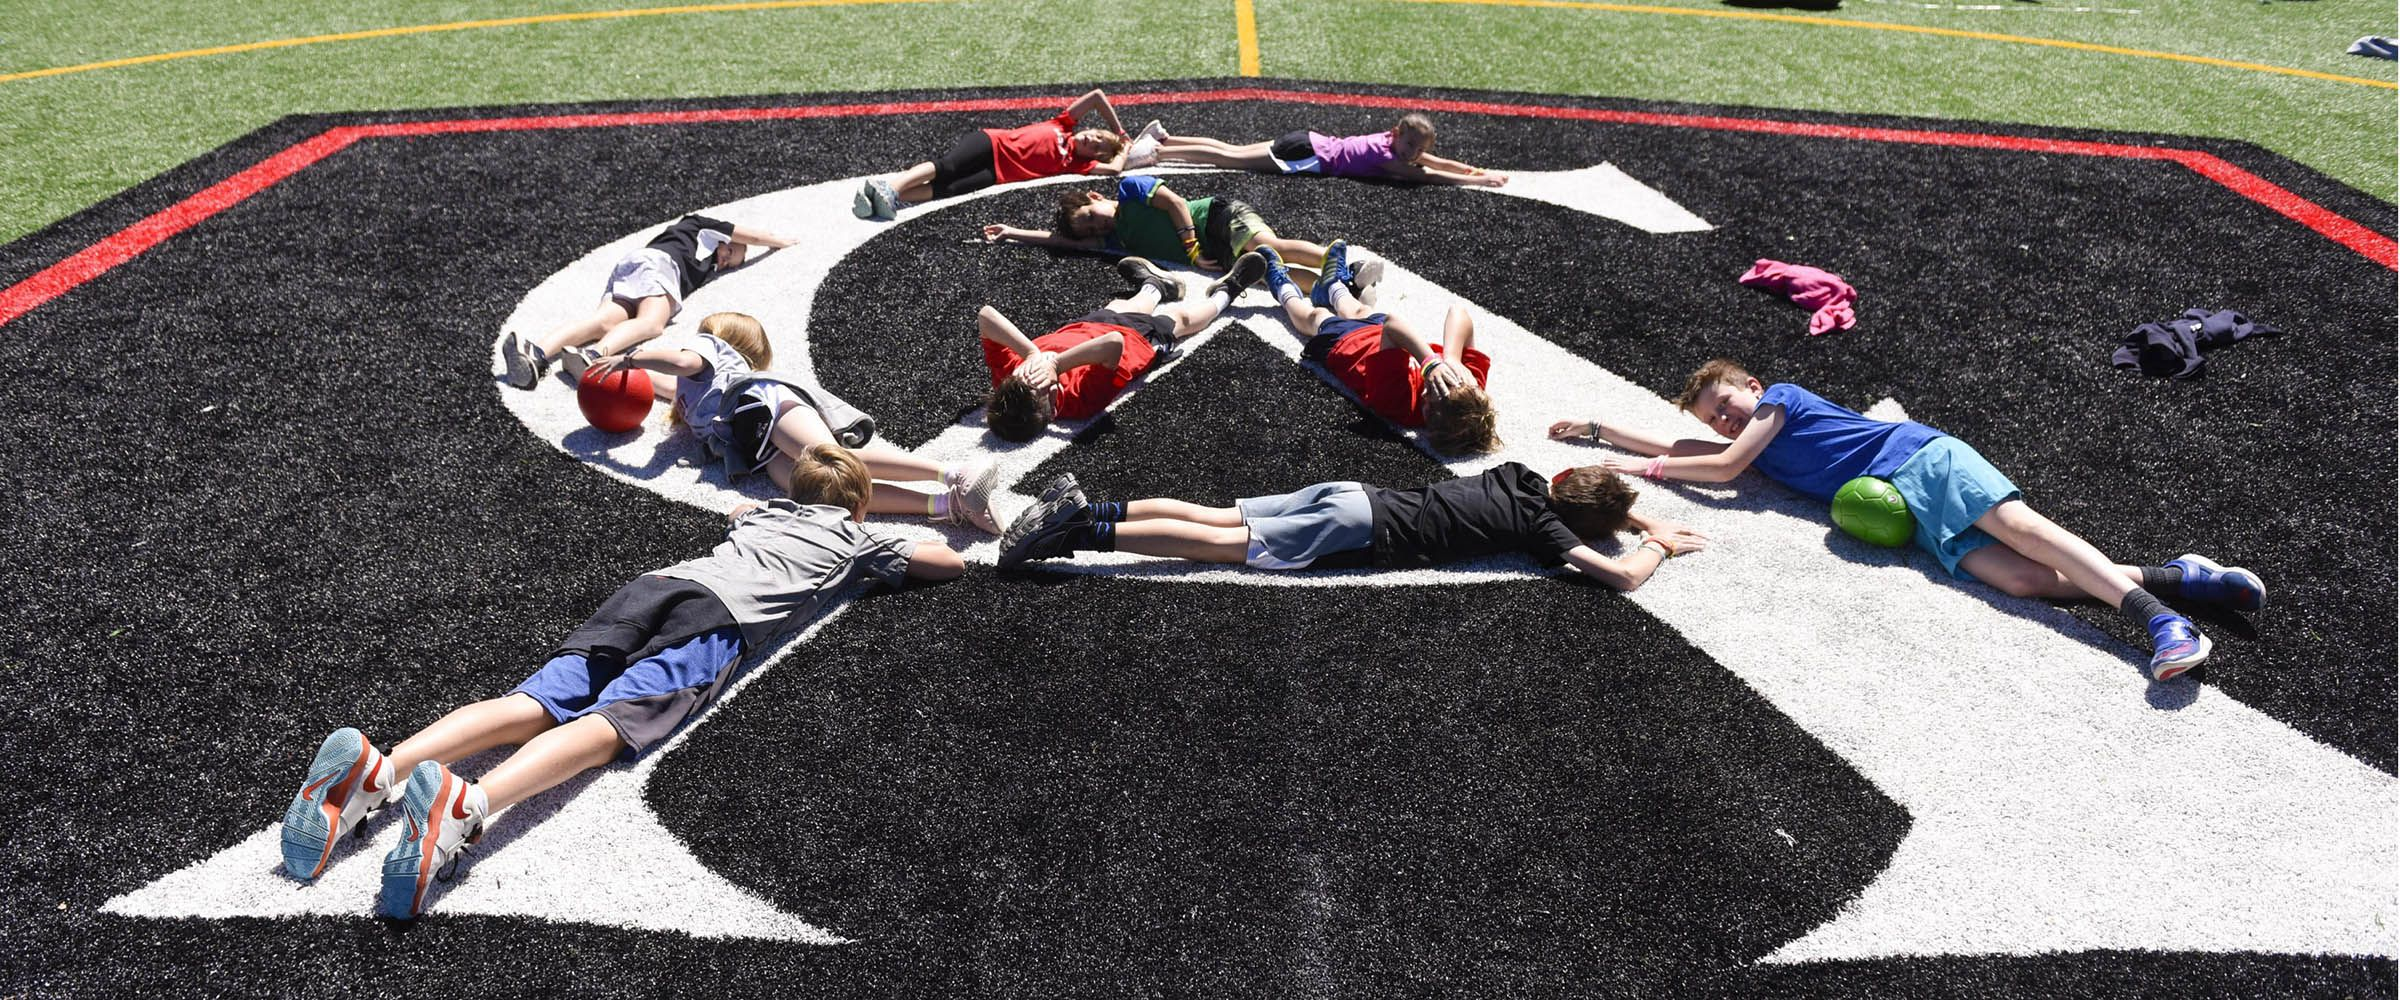 Students relaxing on the CA logo on the lacrosse field. Colorado Academy is a top PK-12 school in Denver.